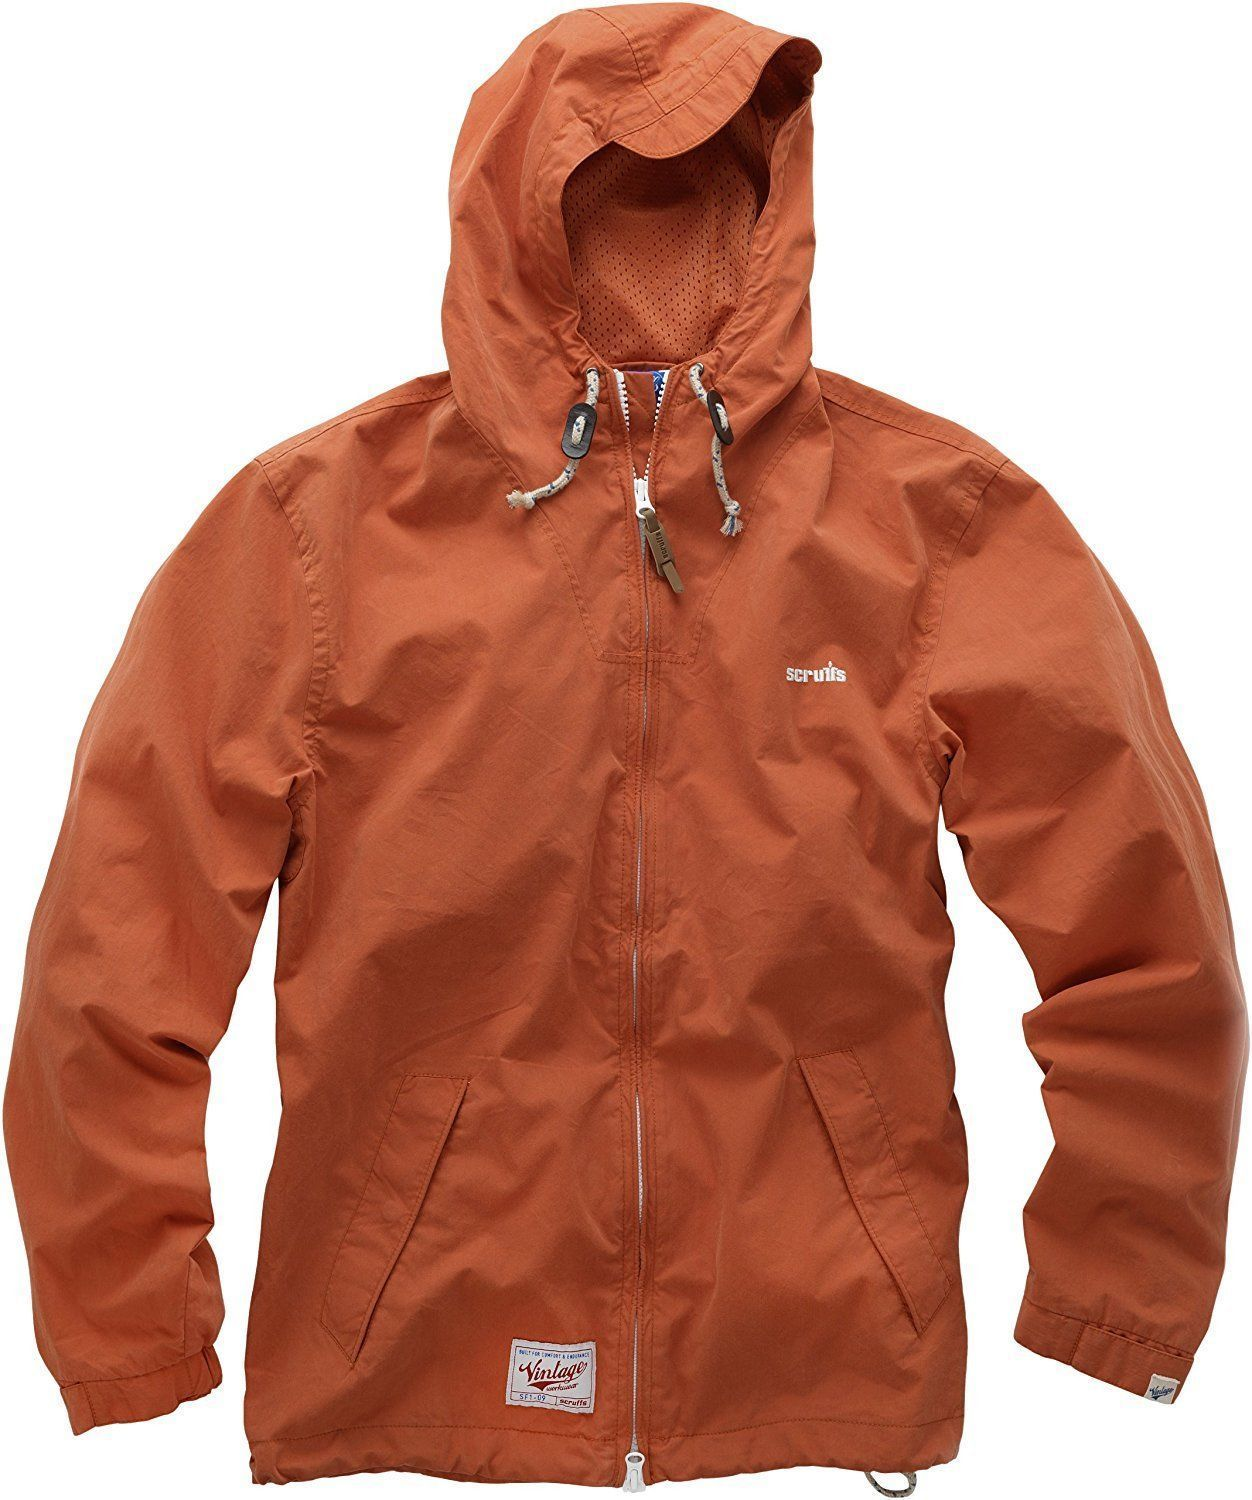 Scruffs Vintage Zip Thru Mac Jacket Orange Water Resistant Hooded Coat (M-XL)